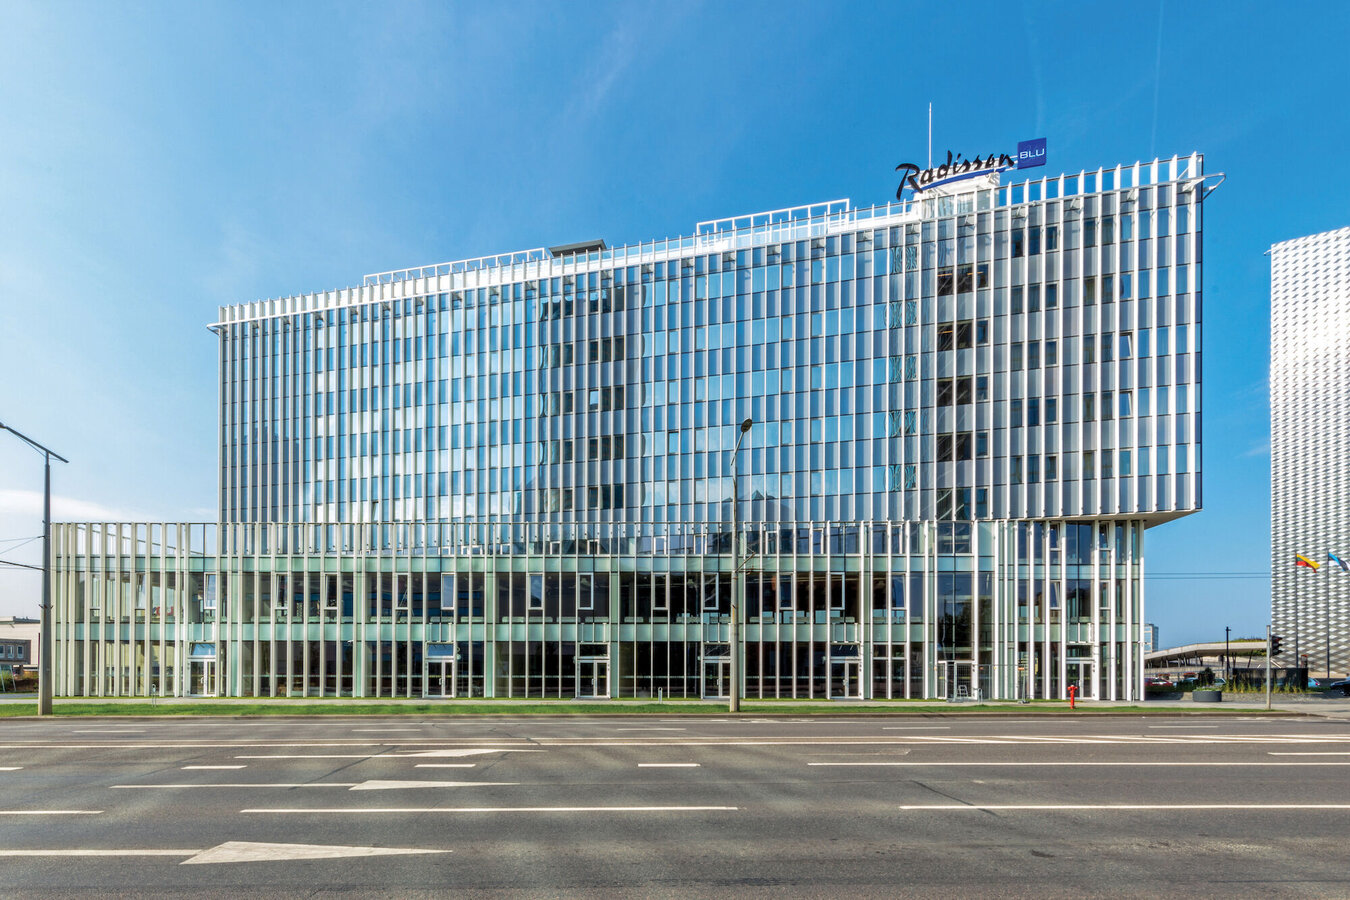 CW 50-HI Curtain Walls - Residental/Project Radisson Blu located in Vila-real, Lithuania